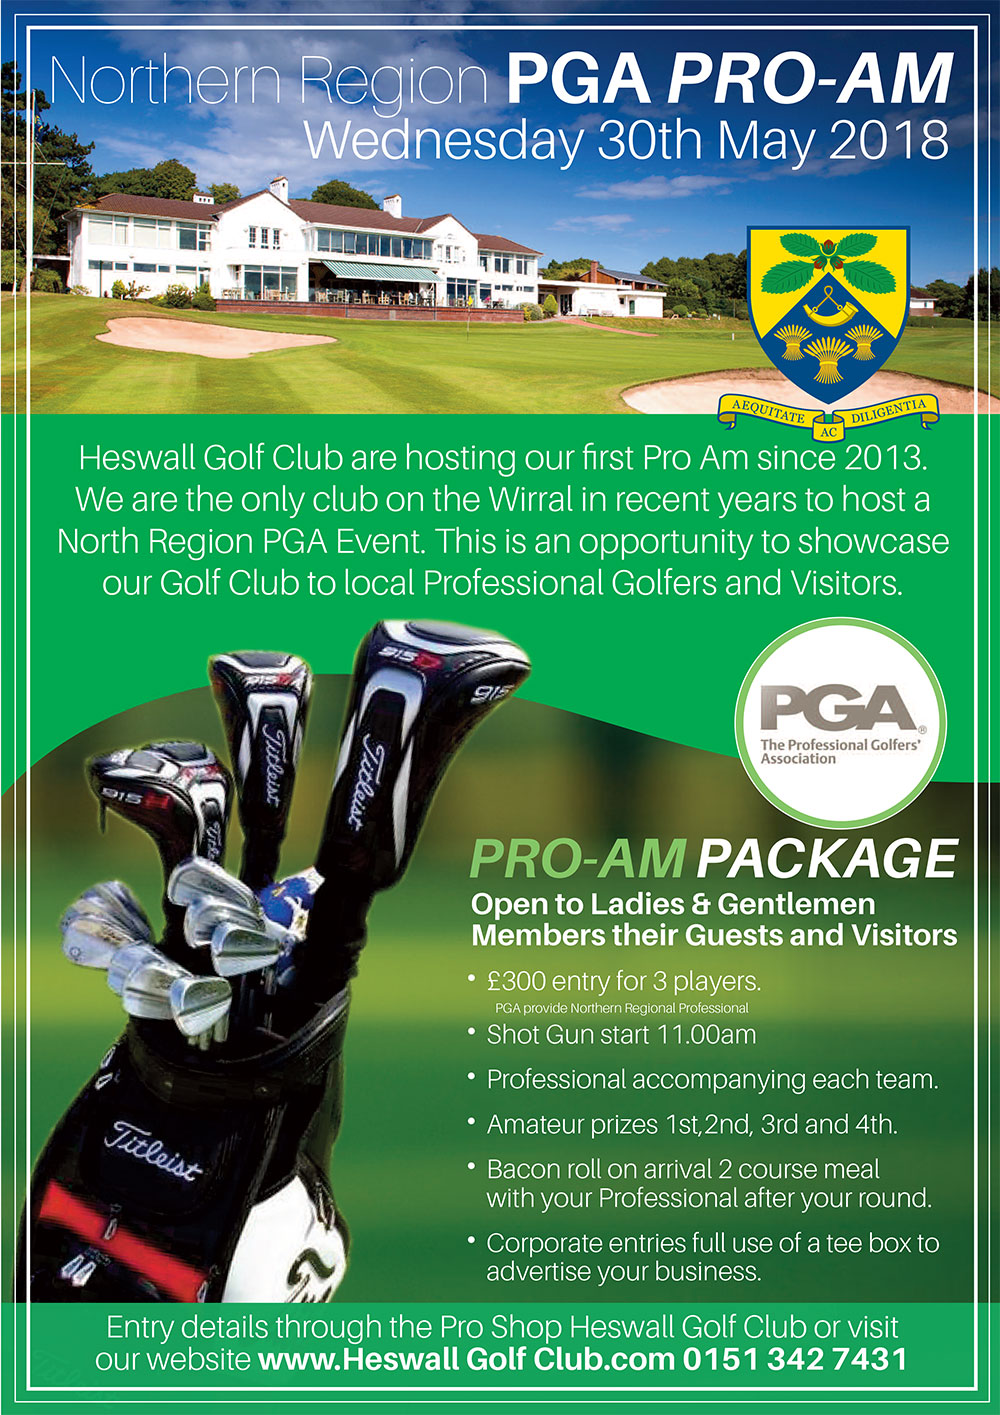 Pro-AM 30th May 2018